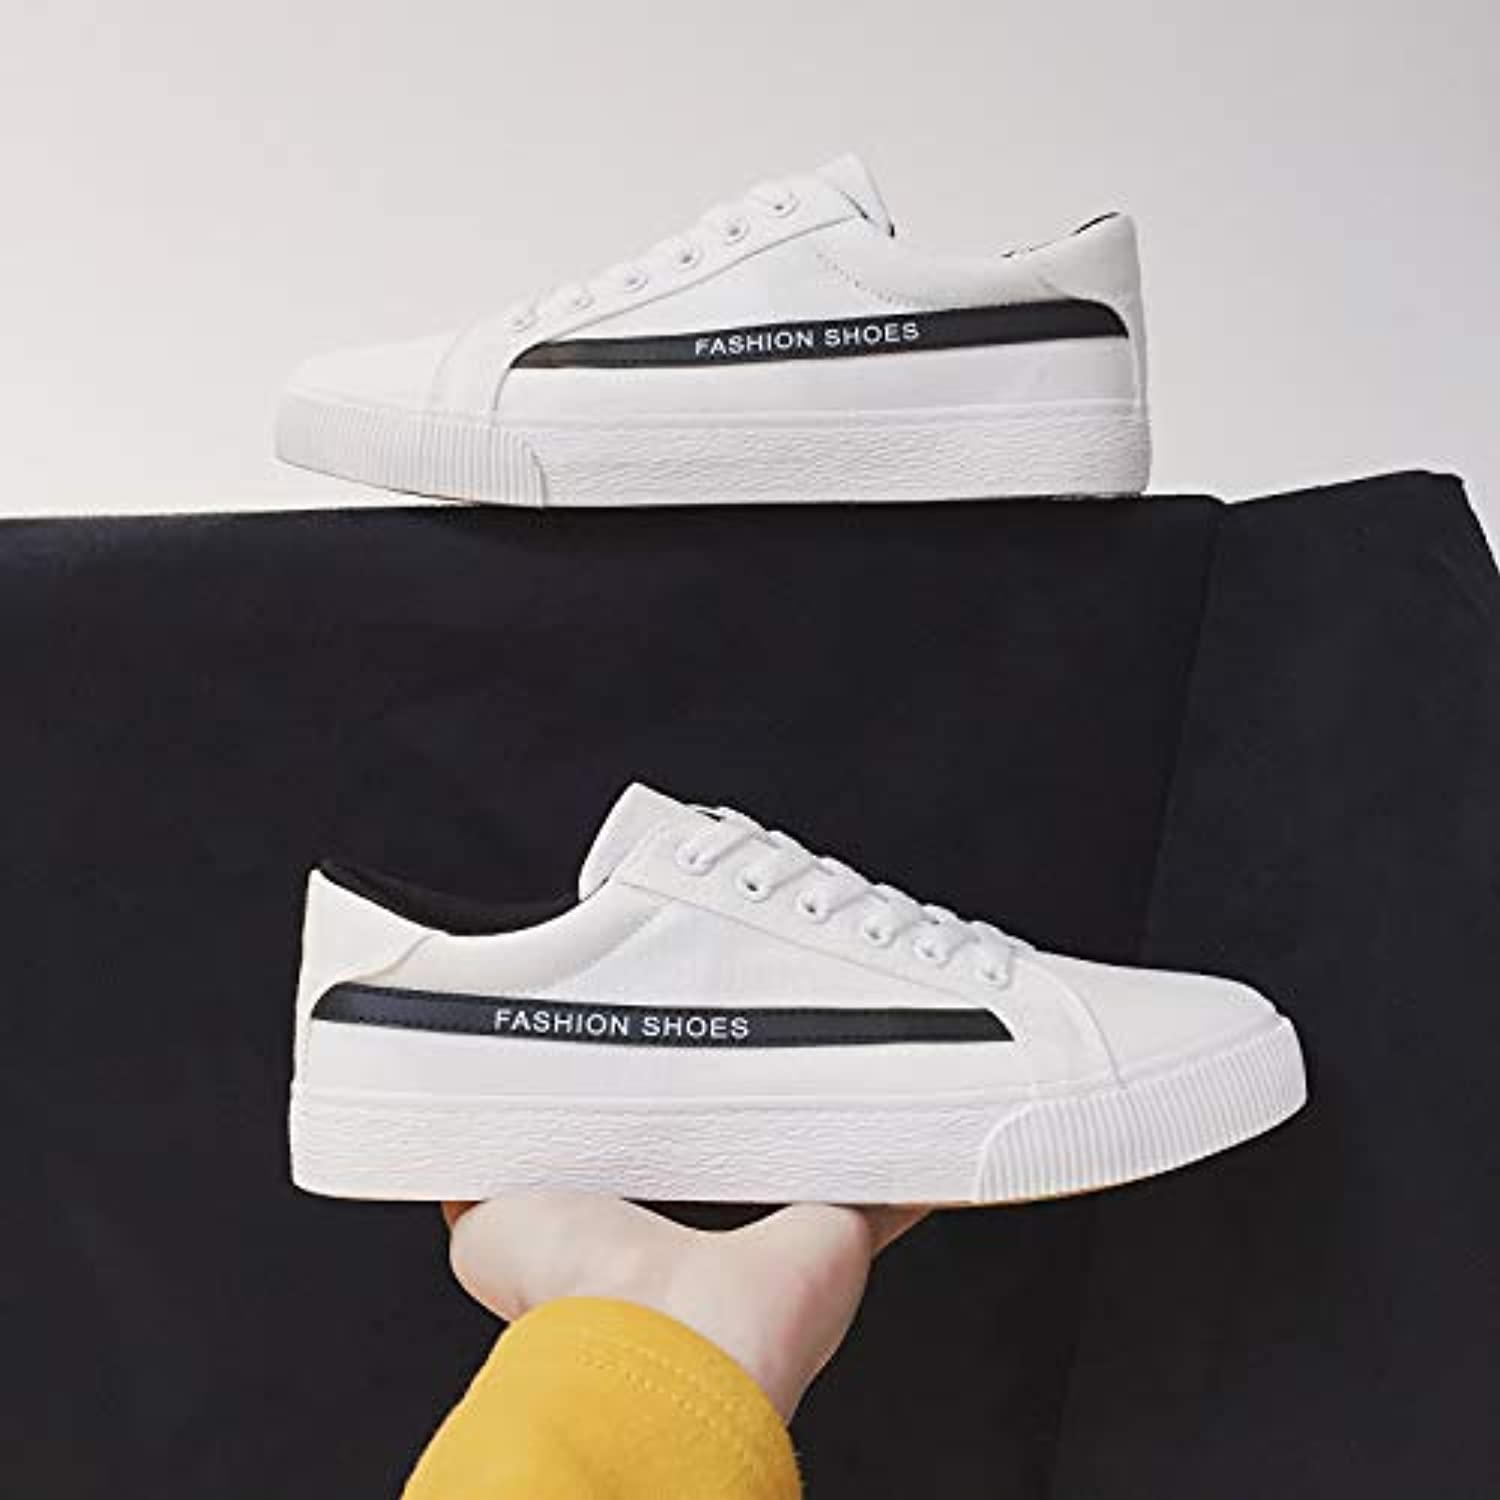 LOVDRAM Men's shoes Spring Men'S shoes Korean Canvas shoes With Casual Sports shoes Fashion Students White shoes